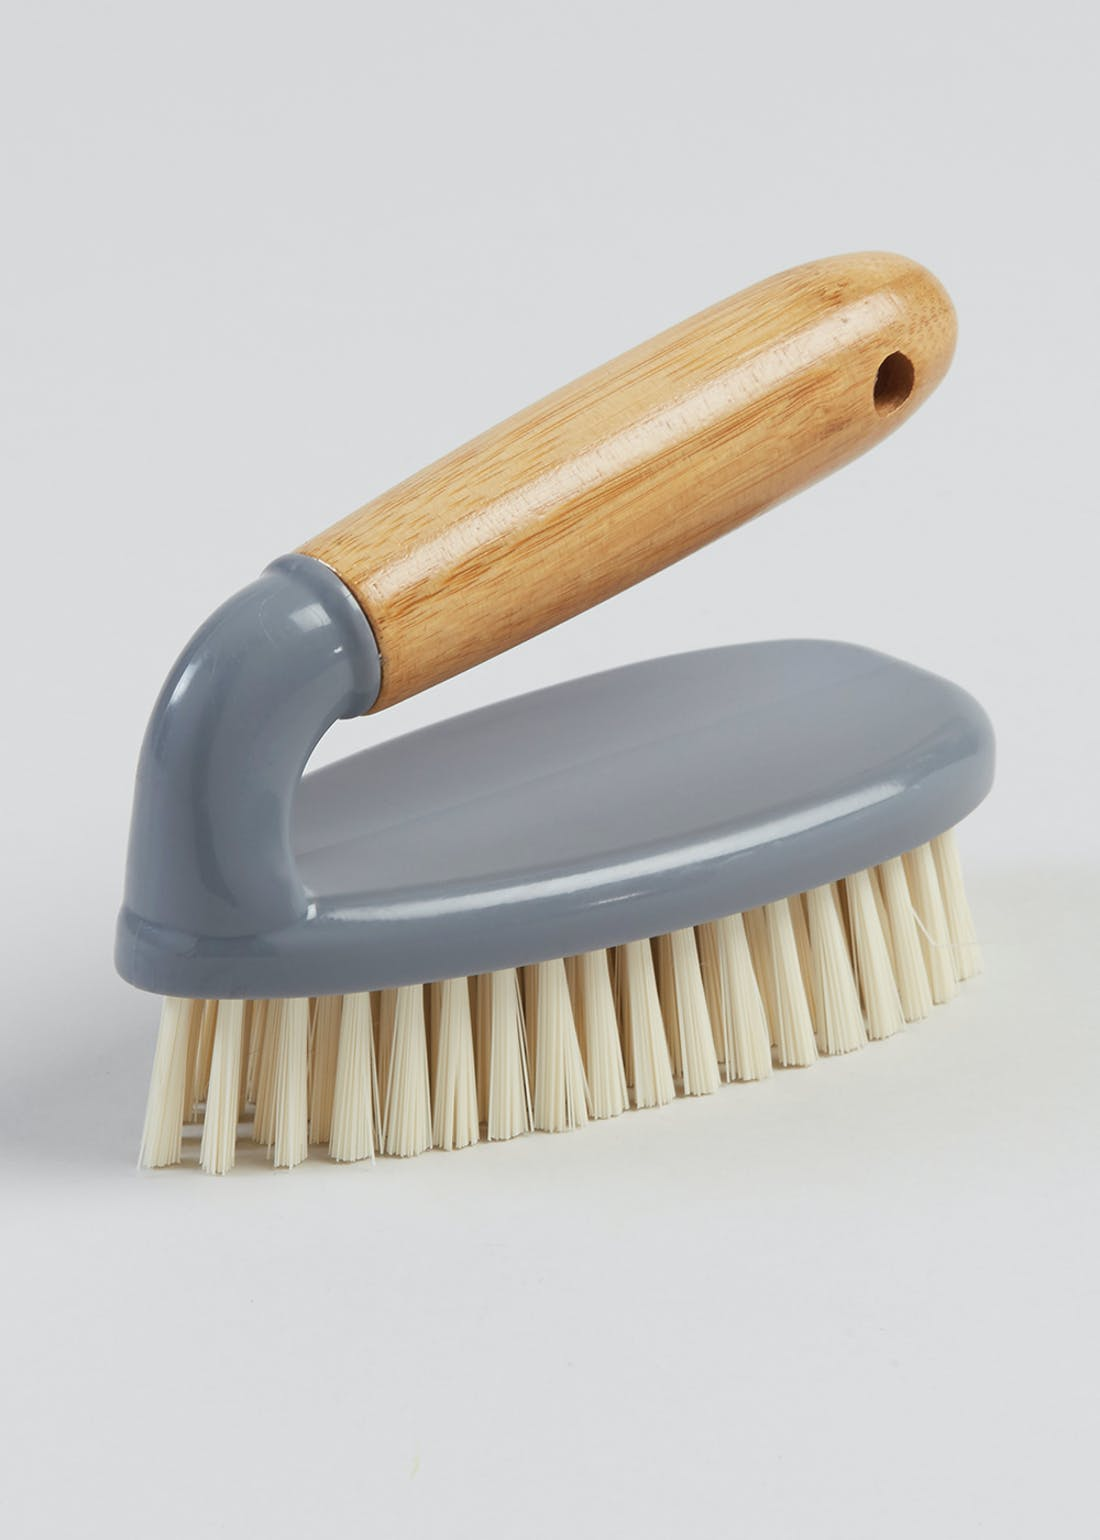 Wooden Handle Dish Brush (15cm x 10cm)